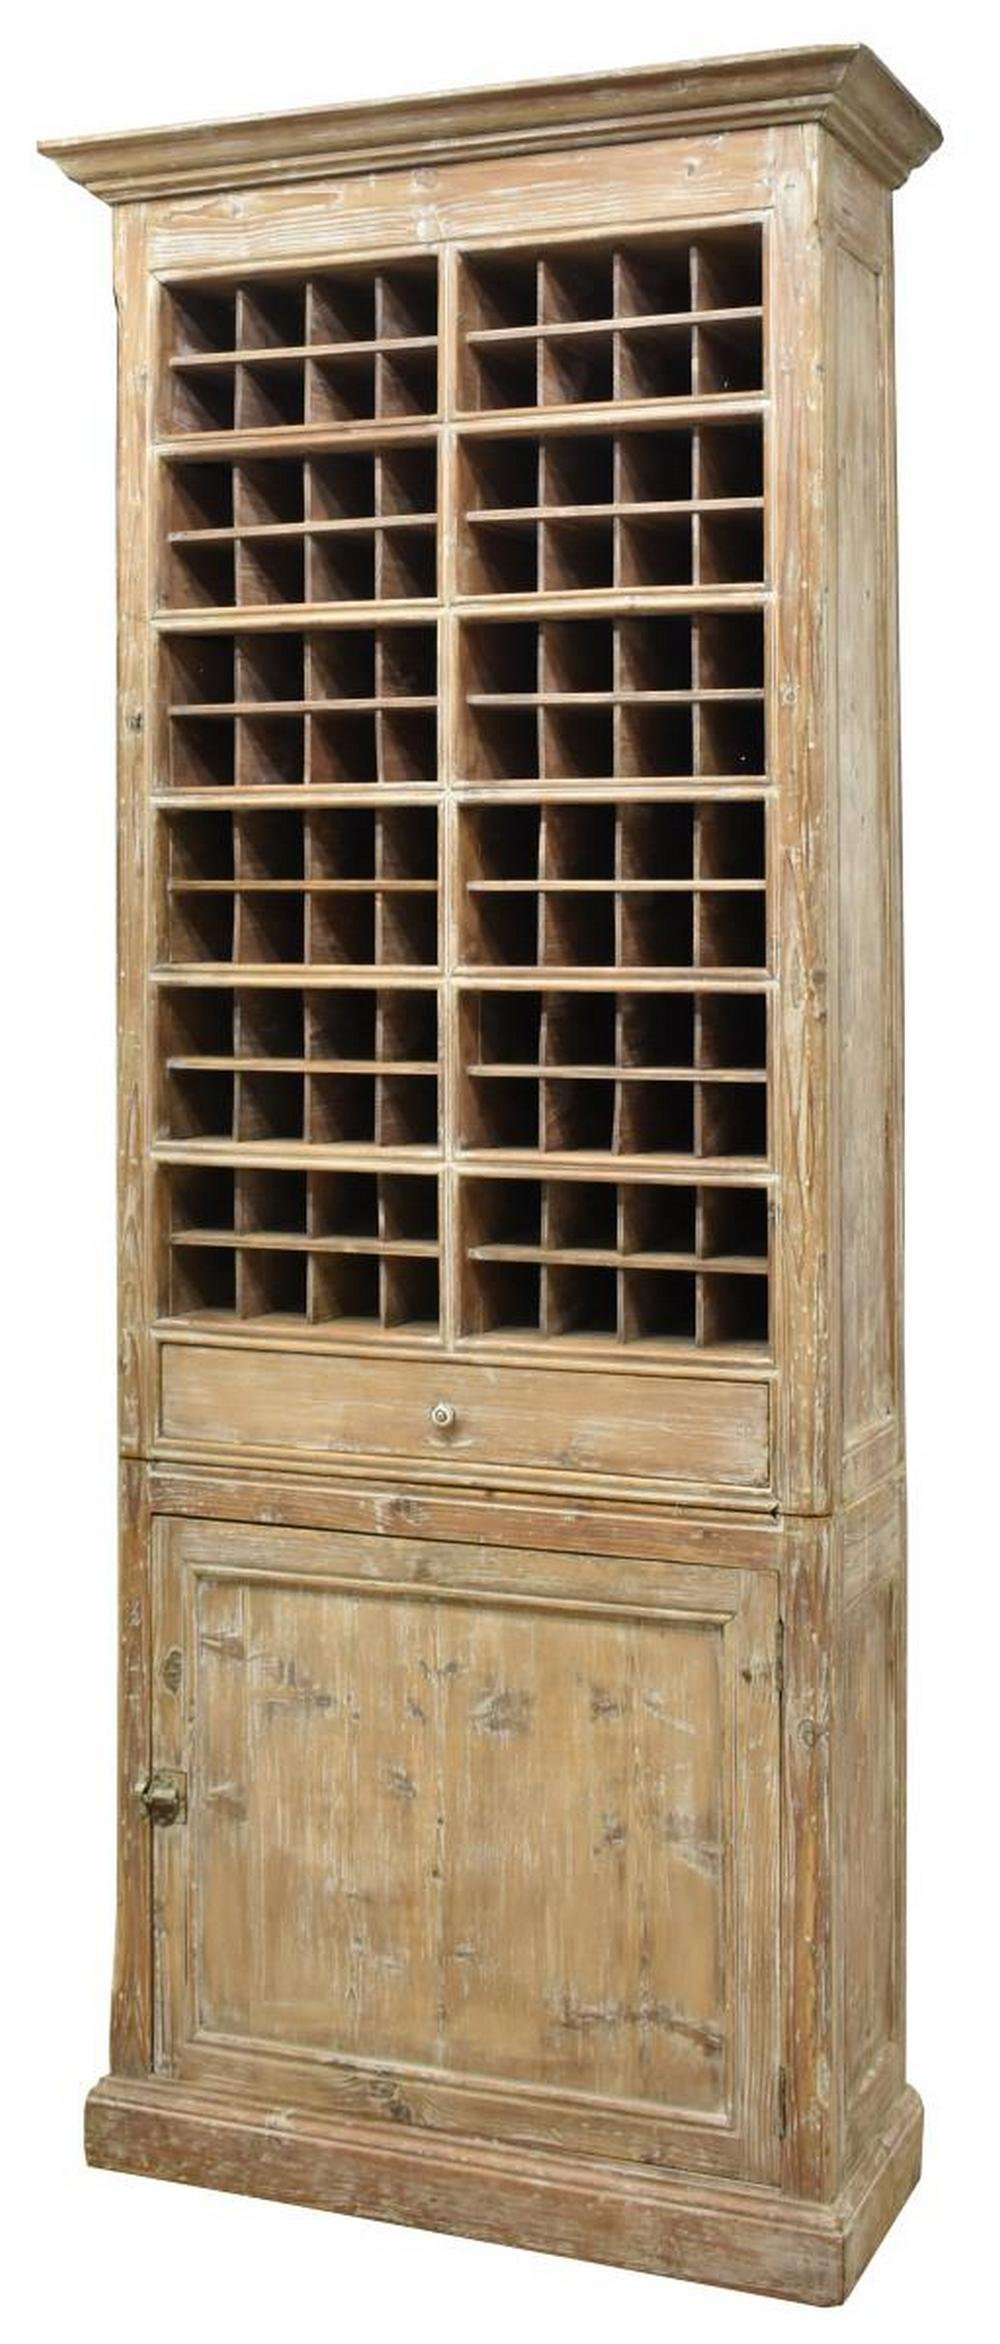 FRENCH PINE BOTTLE STORAGE CABINET